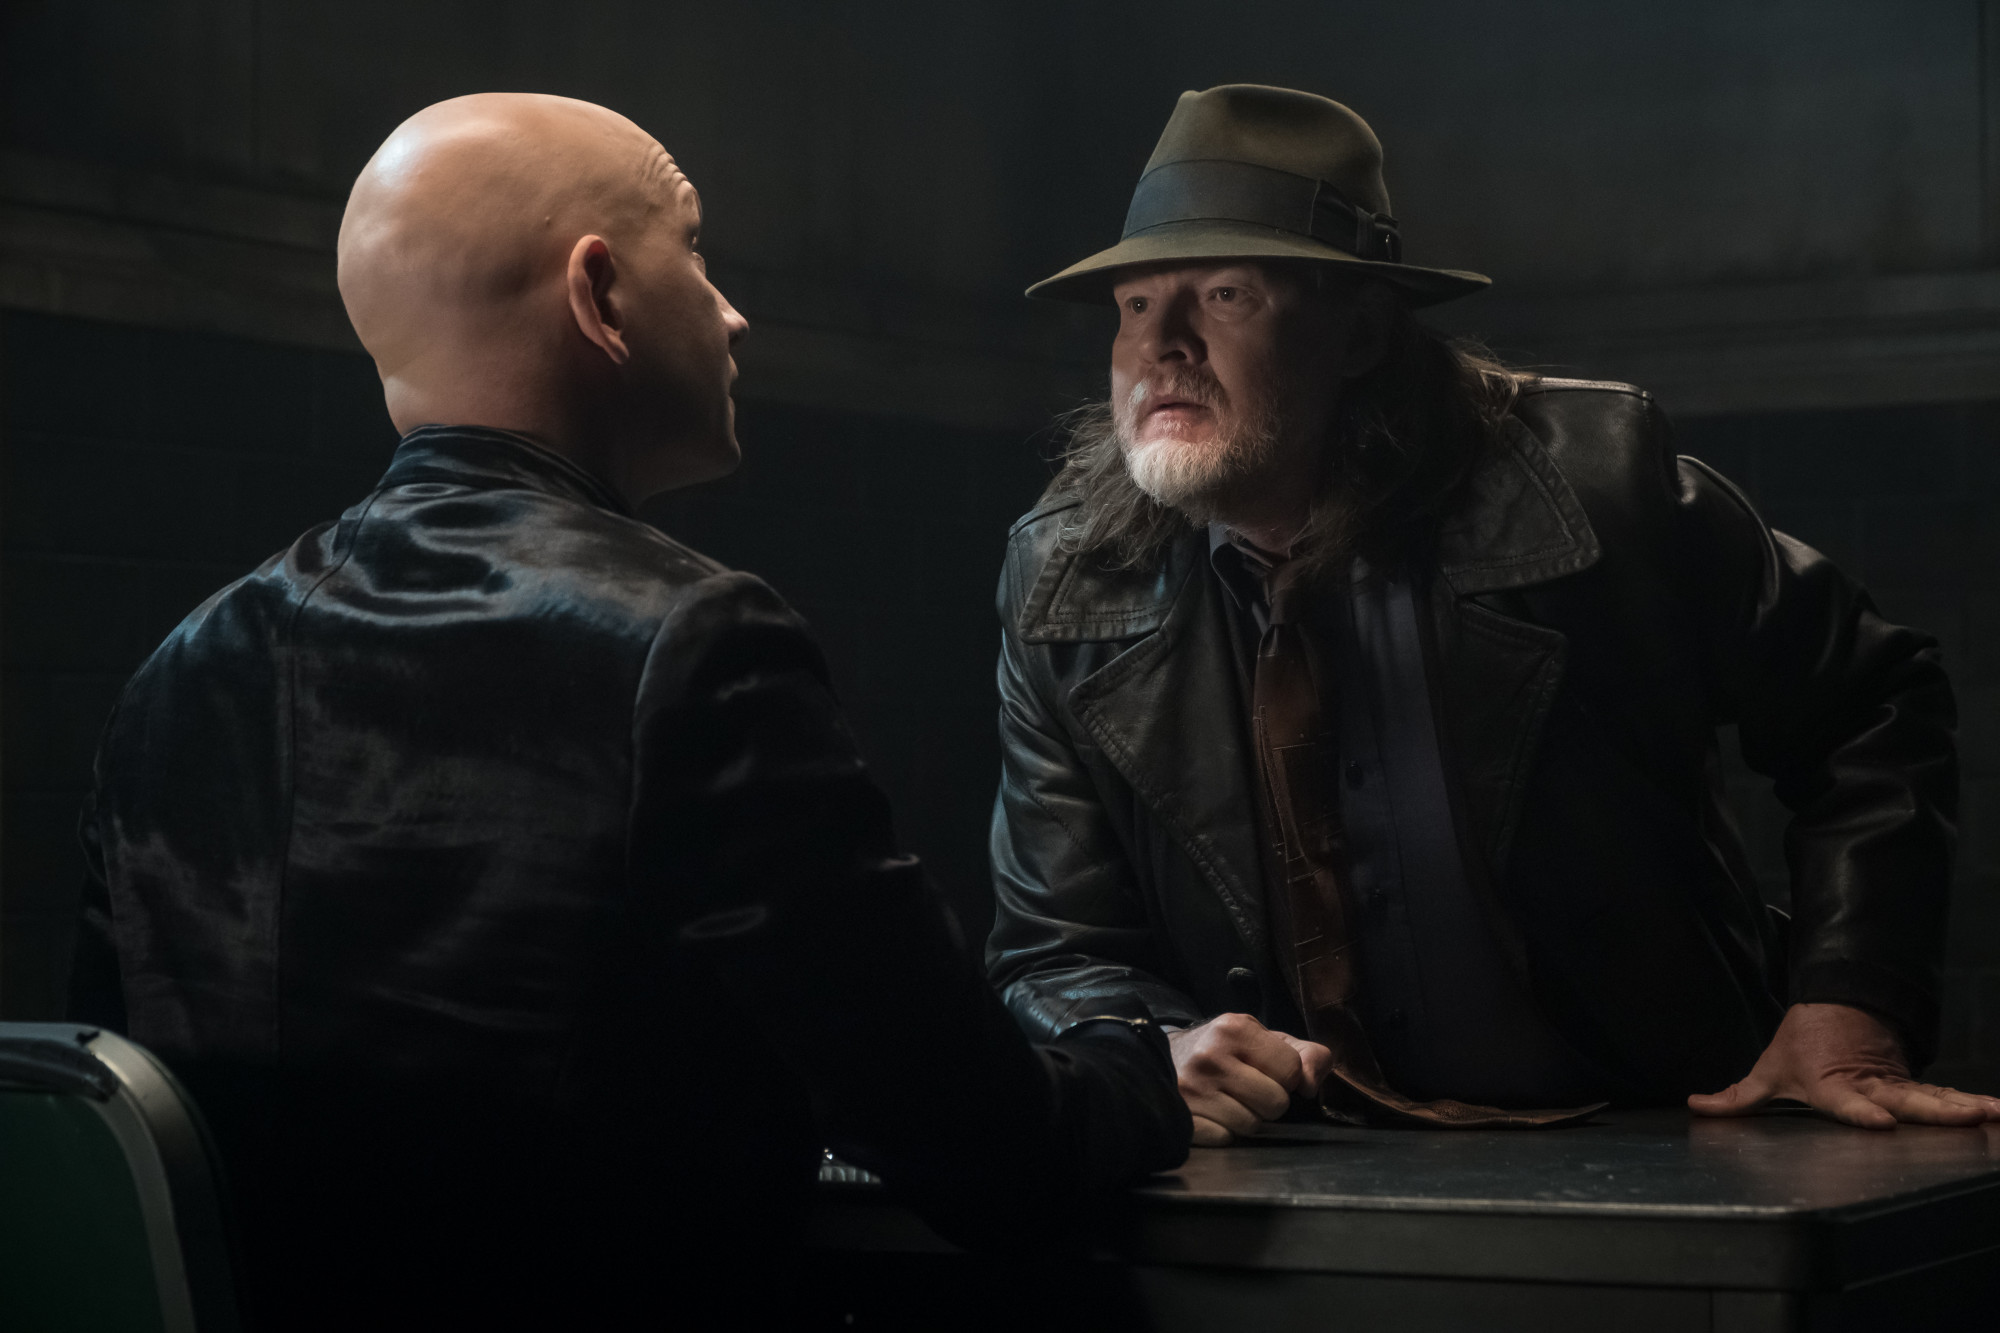 """GOTHAM: Donal Logue in the """"The Trial of Jim Gordon"""" episode of GOTHAM airing Thursday, March 7 (8:00-9:00 PM ET/PT) on FOX. ©2019 Fox Broadcasting Co. Cr: Jeff Neumann/FOX"""